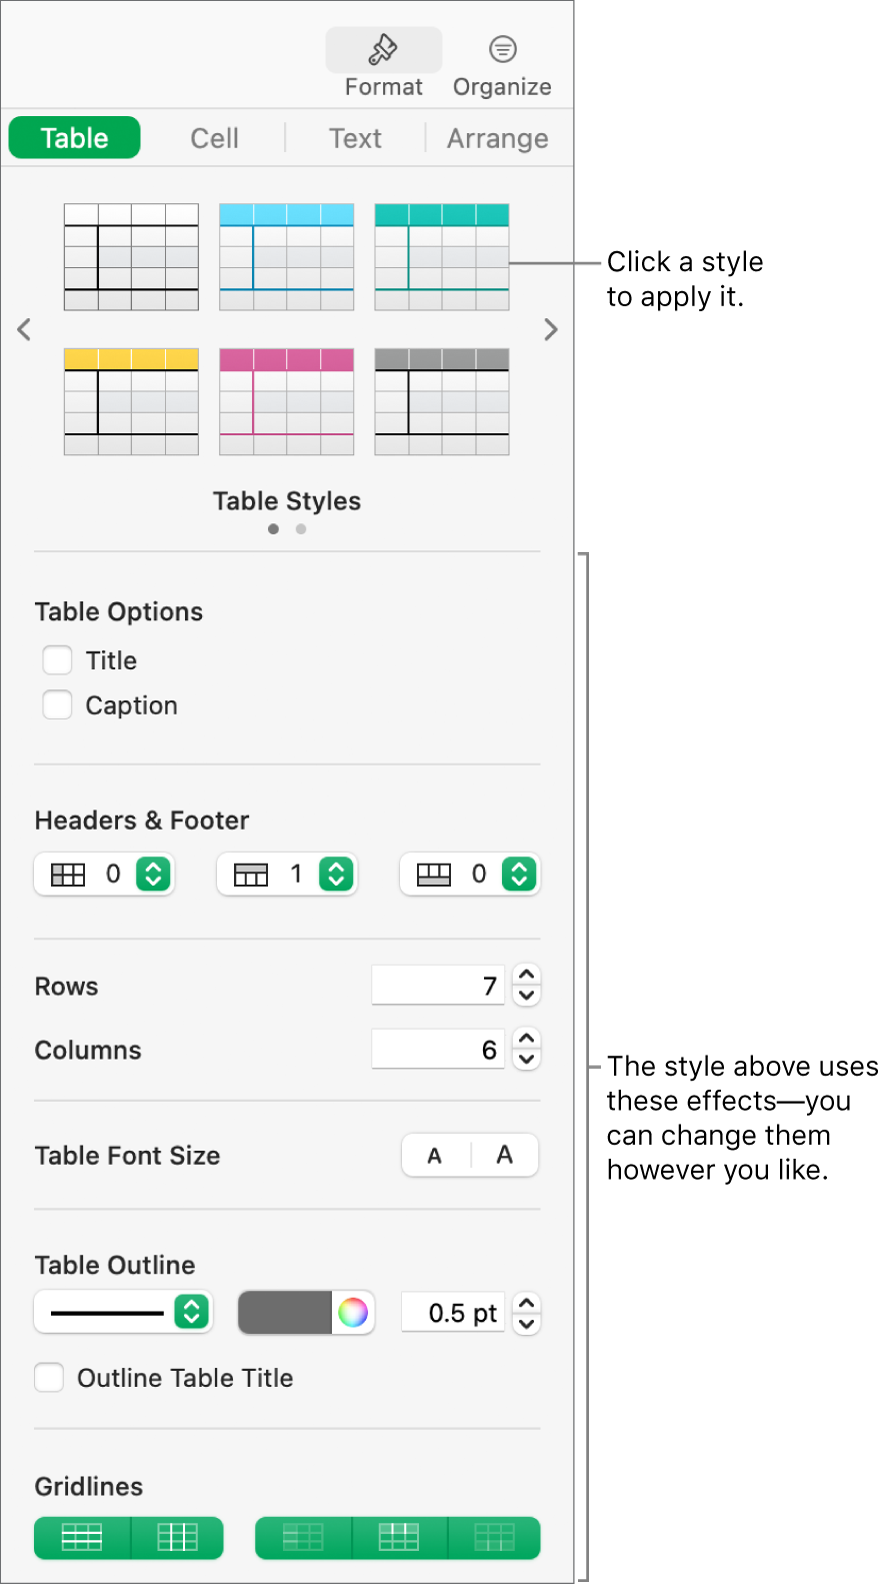 The Format sidebar showing table styles and formatting options.